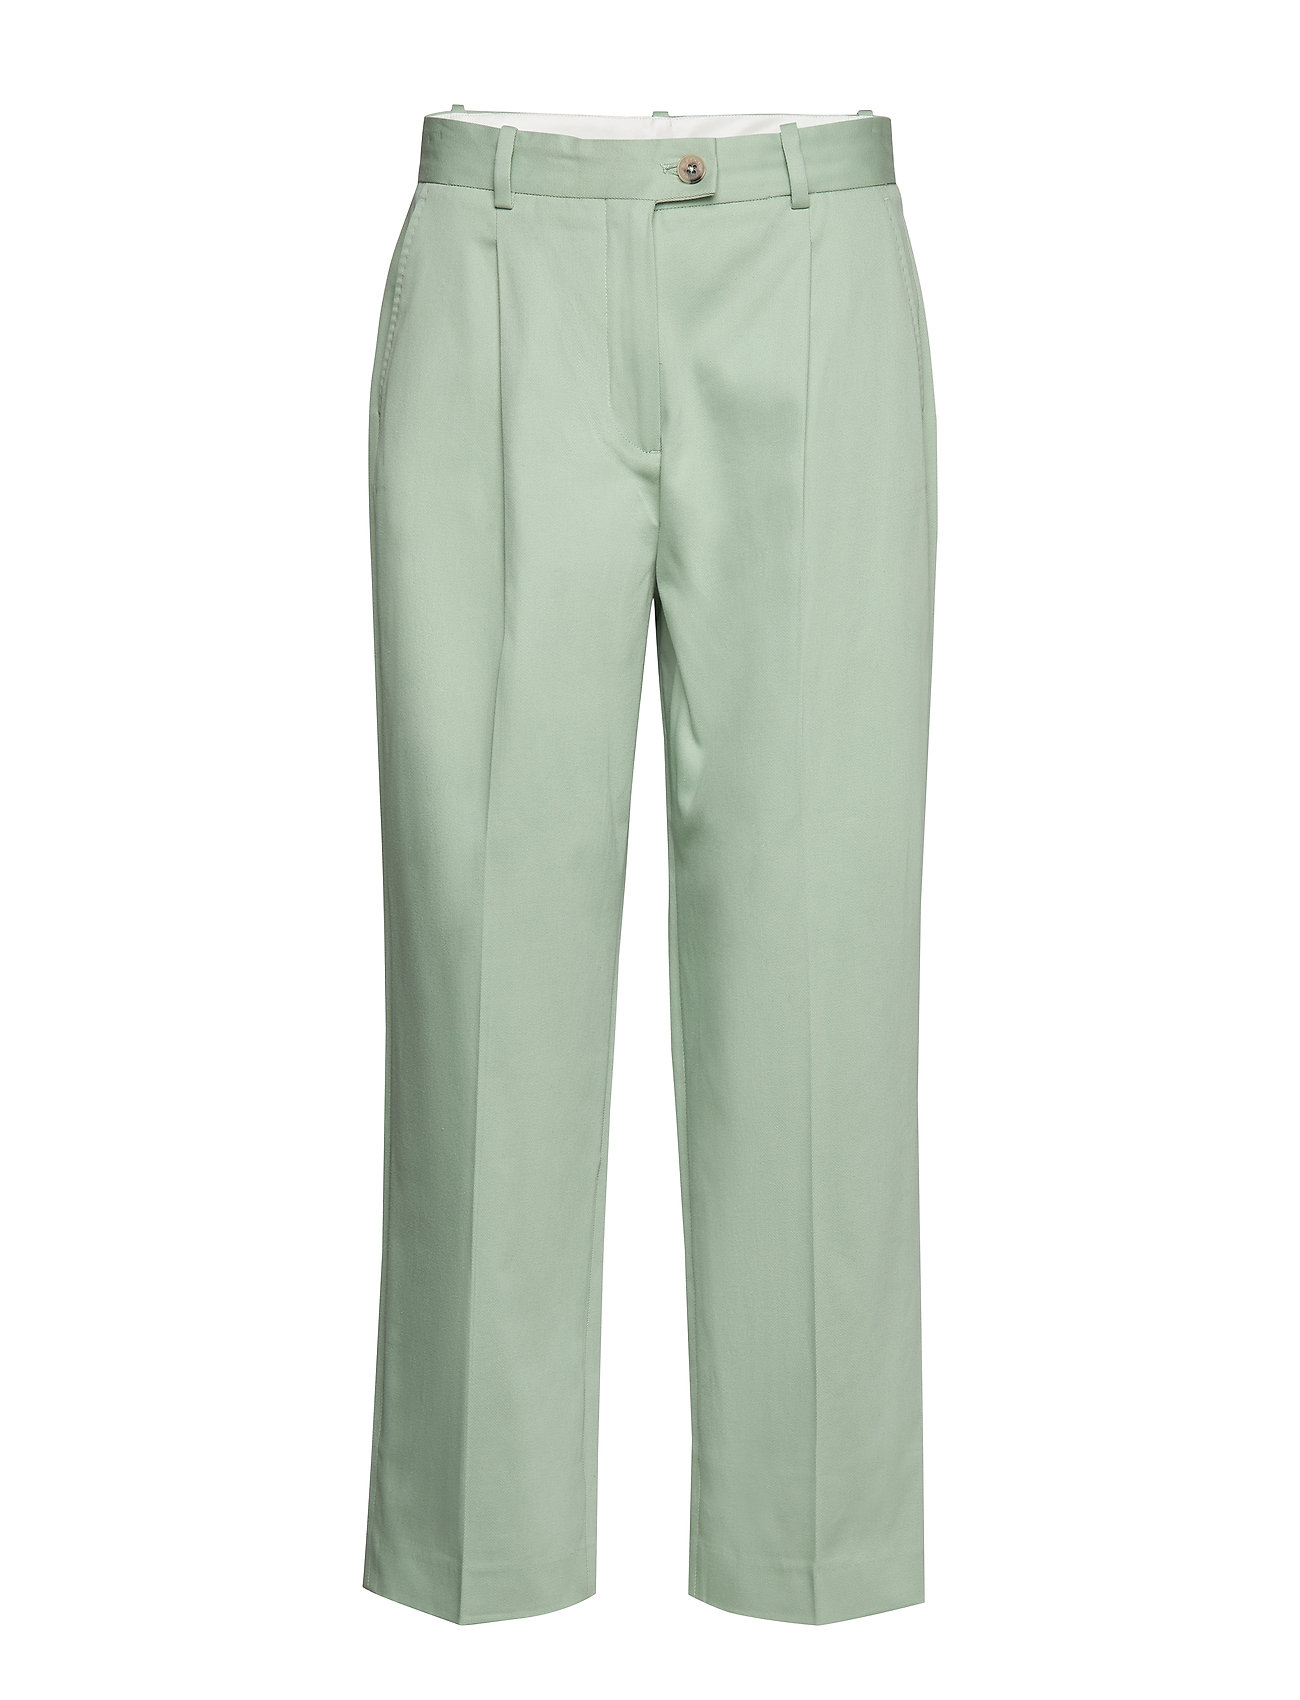 Tommy Hilfiger COTTON PASTEL TAPERED PANT - SEA MIST MINT